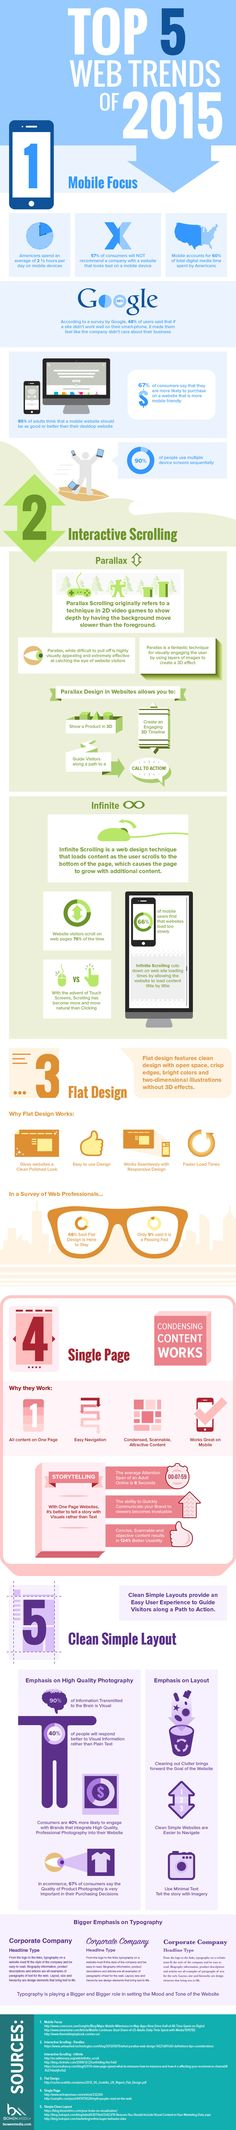 Top 5 Web Design Trends for 2015 - #SocialMedia #Webdesign #Trends  www.BrainSocial.biz